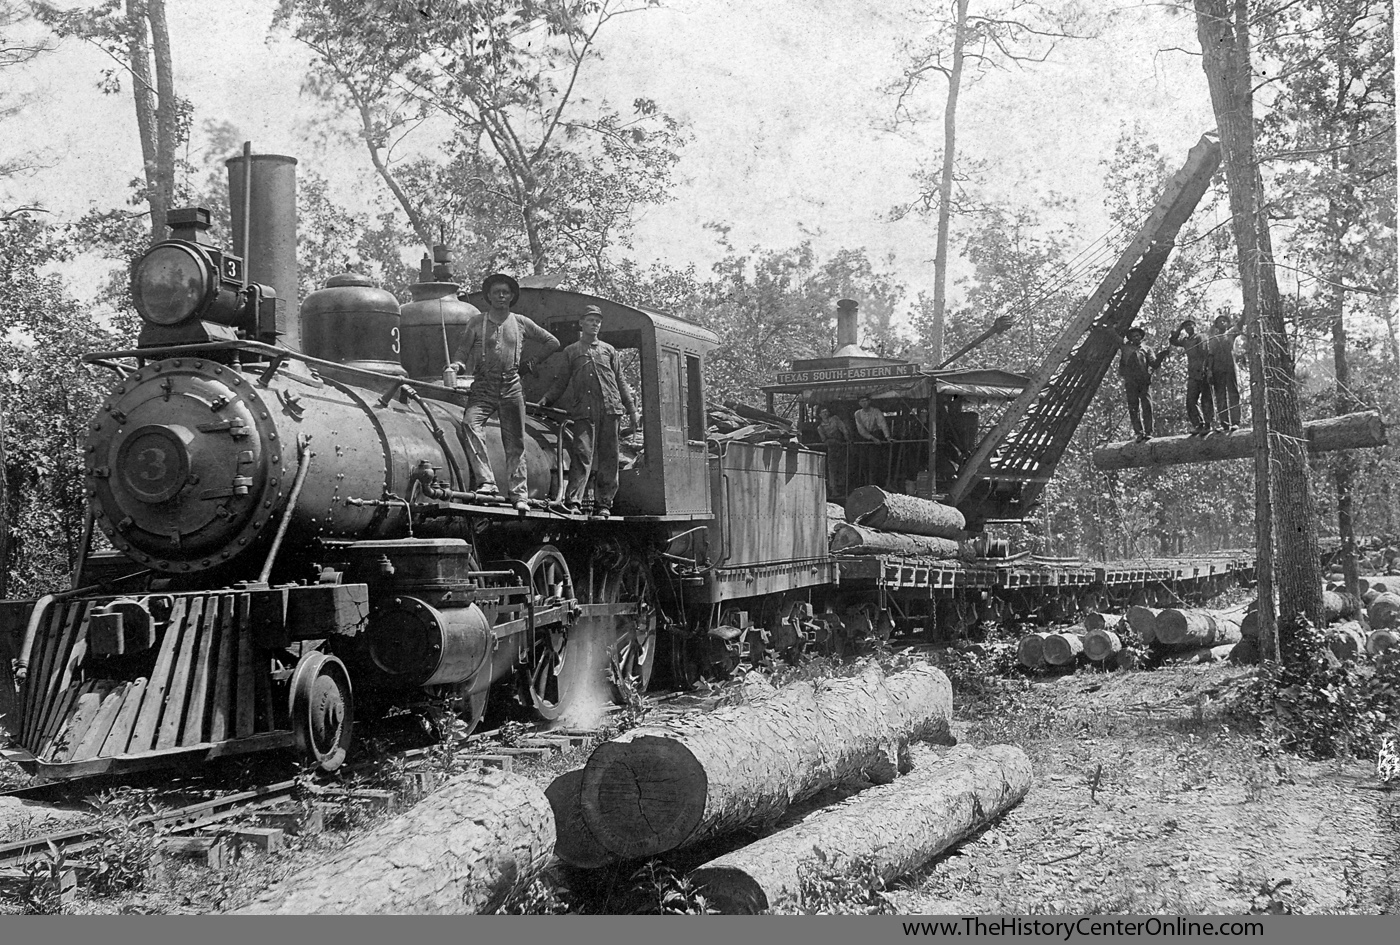 East Texas Railroad Photograph Selections The History Center